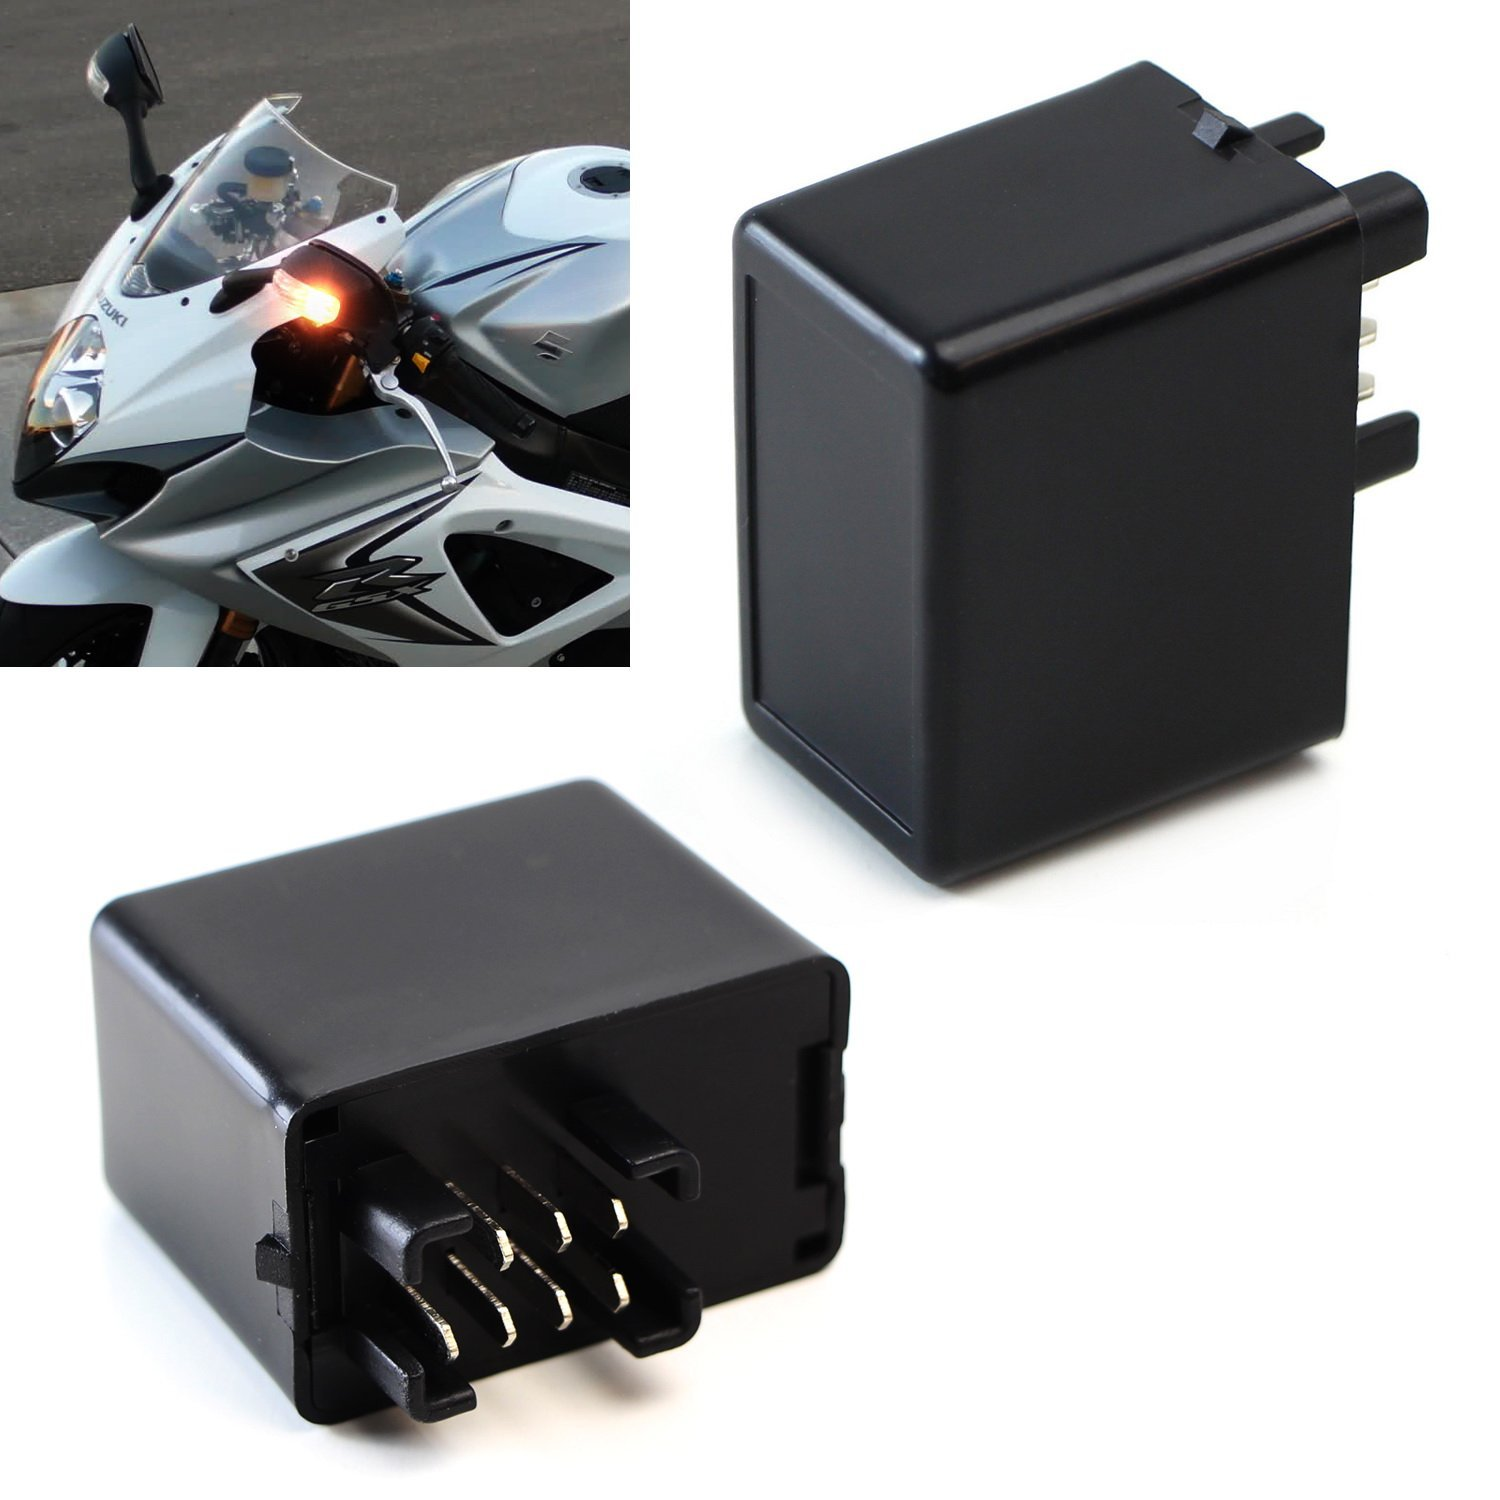 iJDMTOY (1) 7-Pin Plug-N-Play Electronic LED Flasher Relay Hyper Flash Fix For Suzuki Motorcycle Bike Installing LED Turn Signal Bulbs